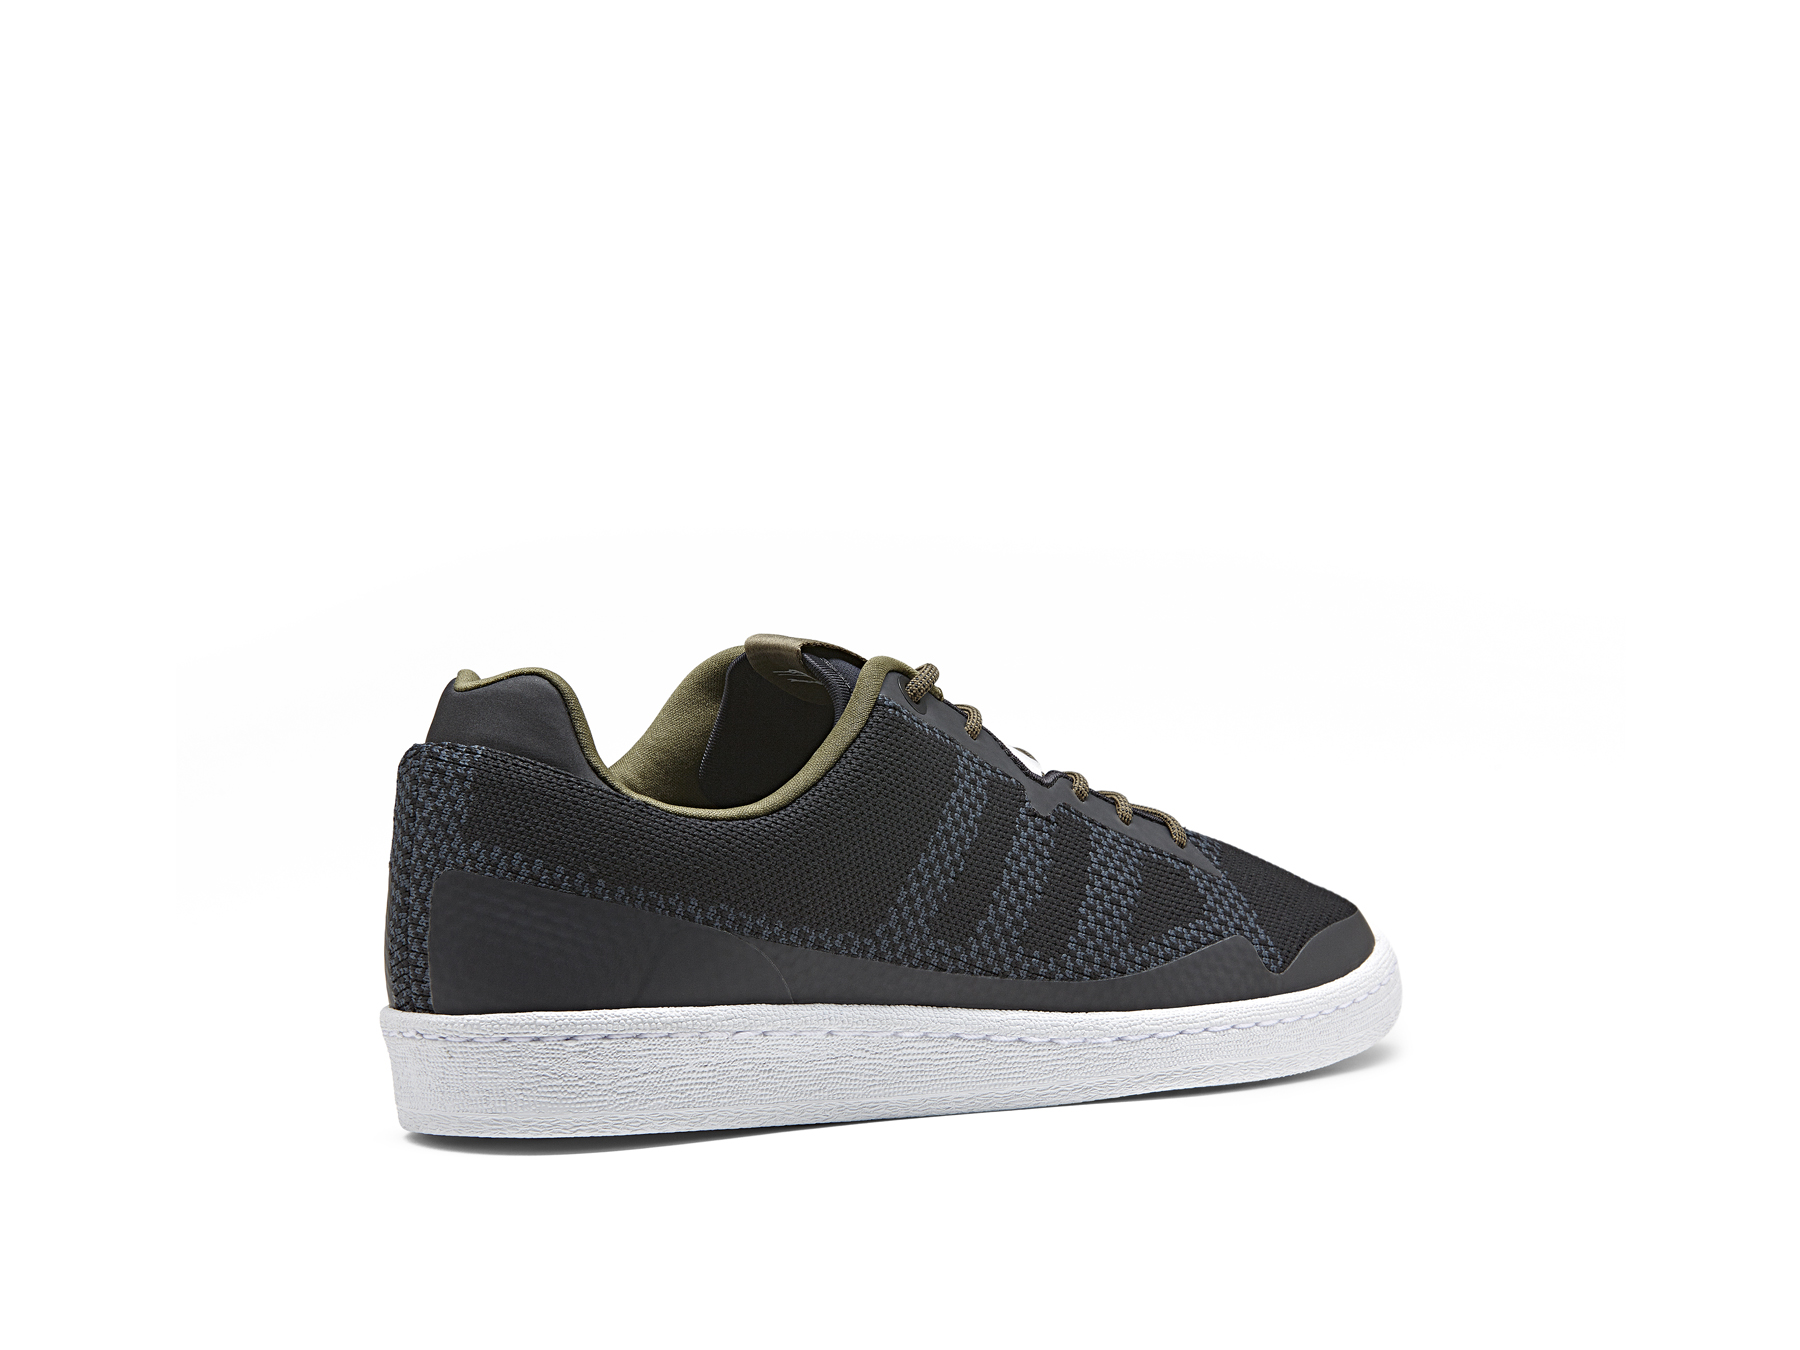 buy online 8eb3f 07337 MORE Norse Projects x adidas Consortium Terrex Agravic